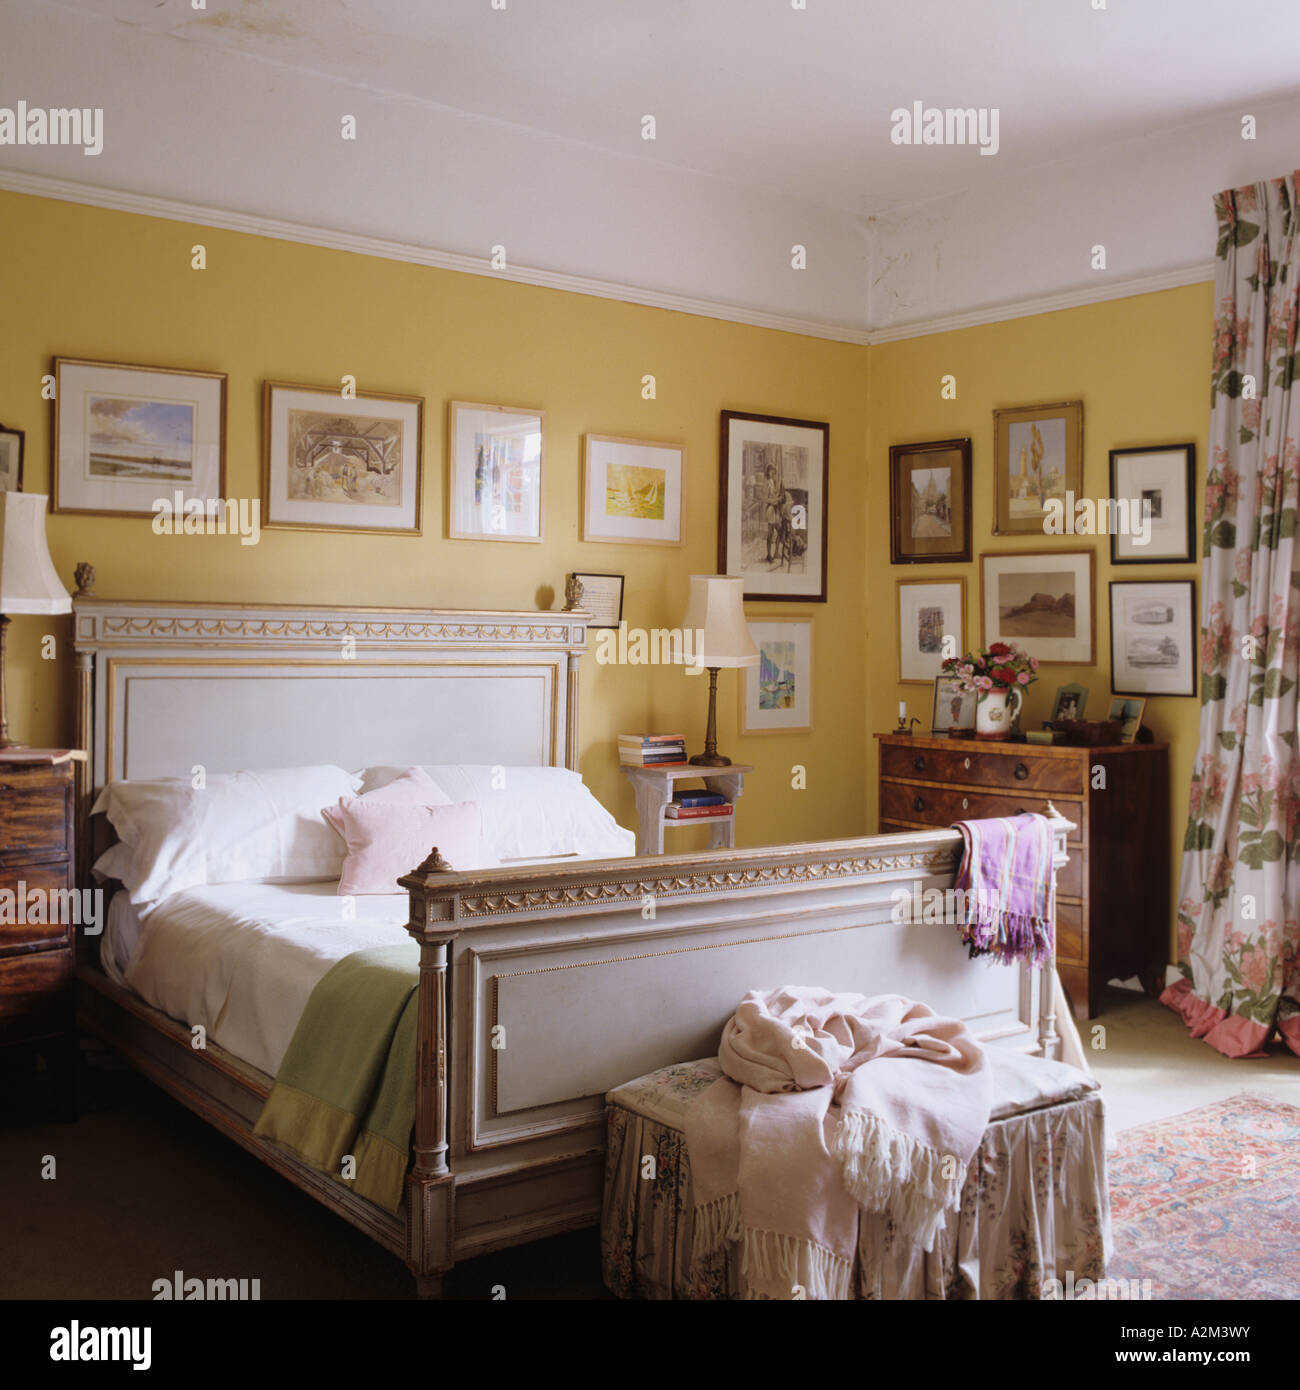 Antique Bed Linen Stock Photos Antique Bed Linen Stock Images Alamy